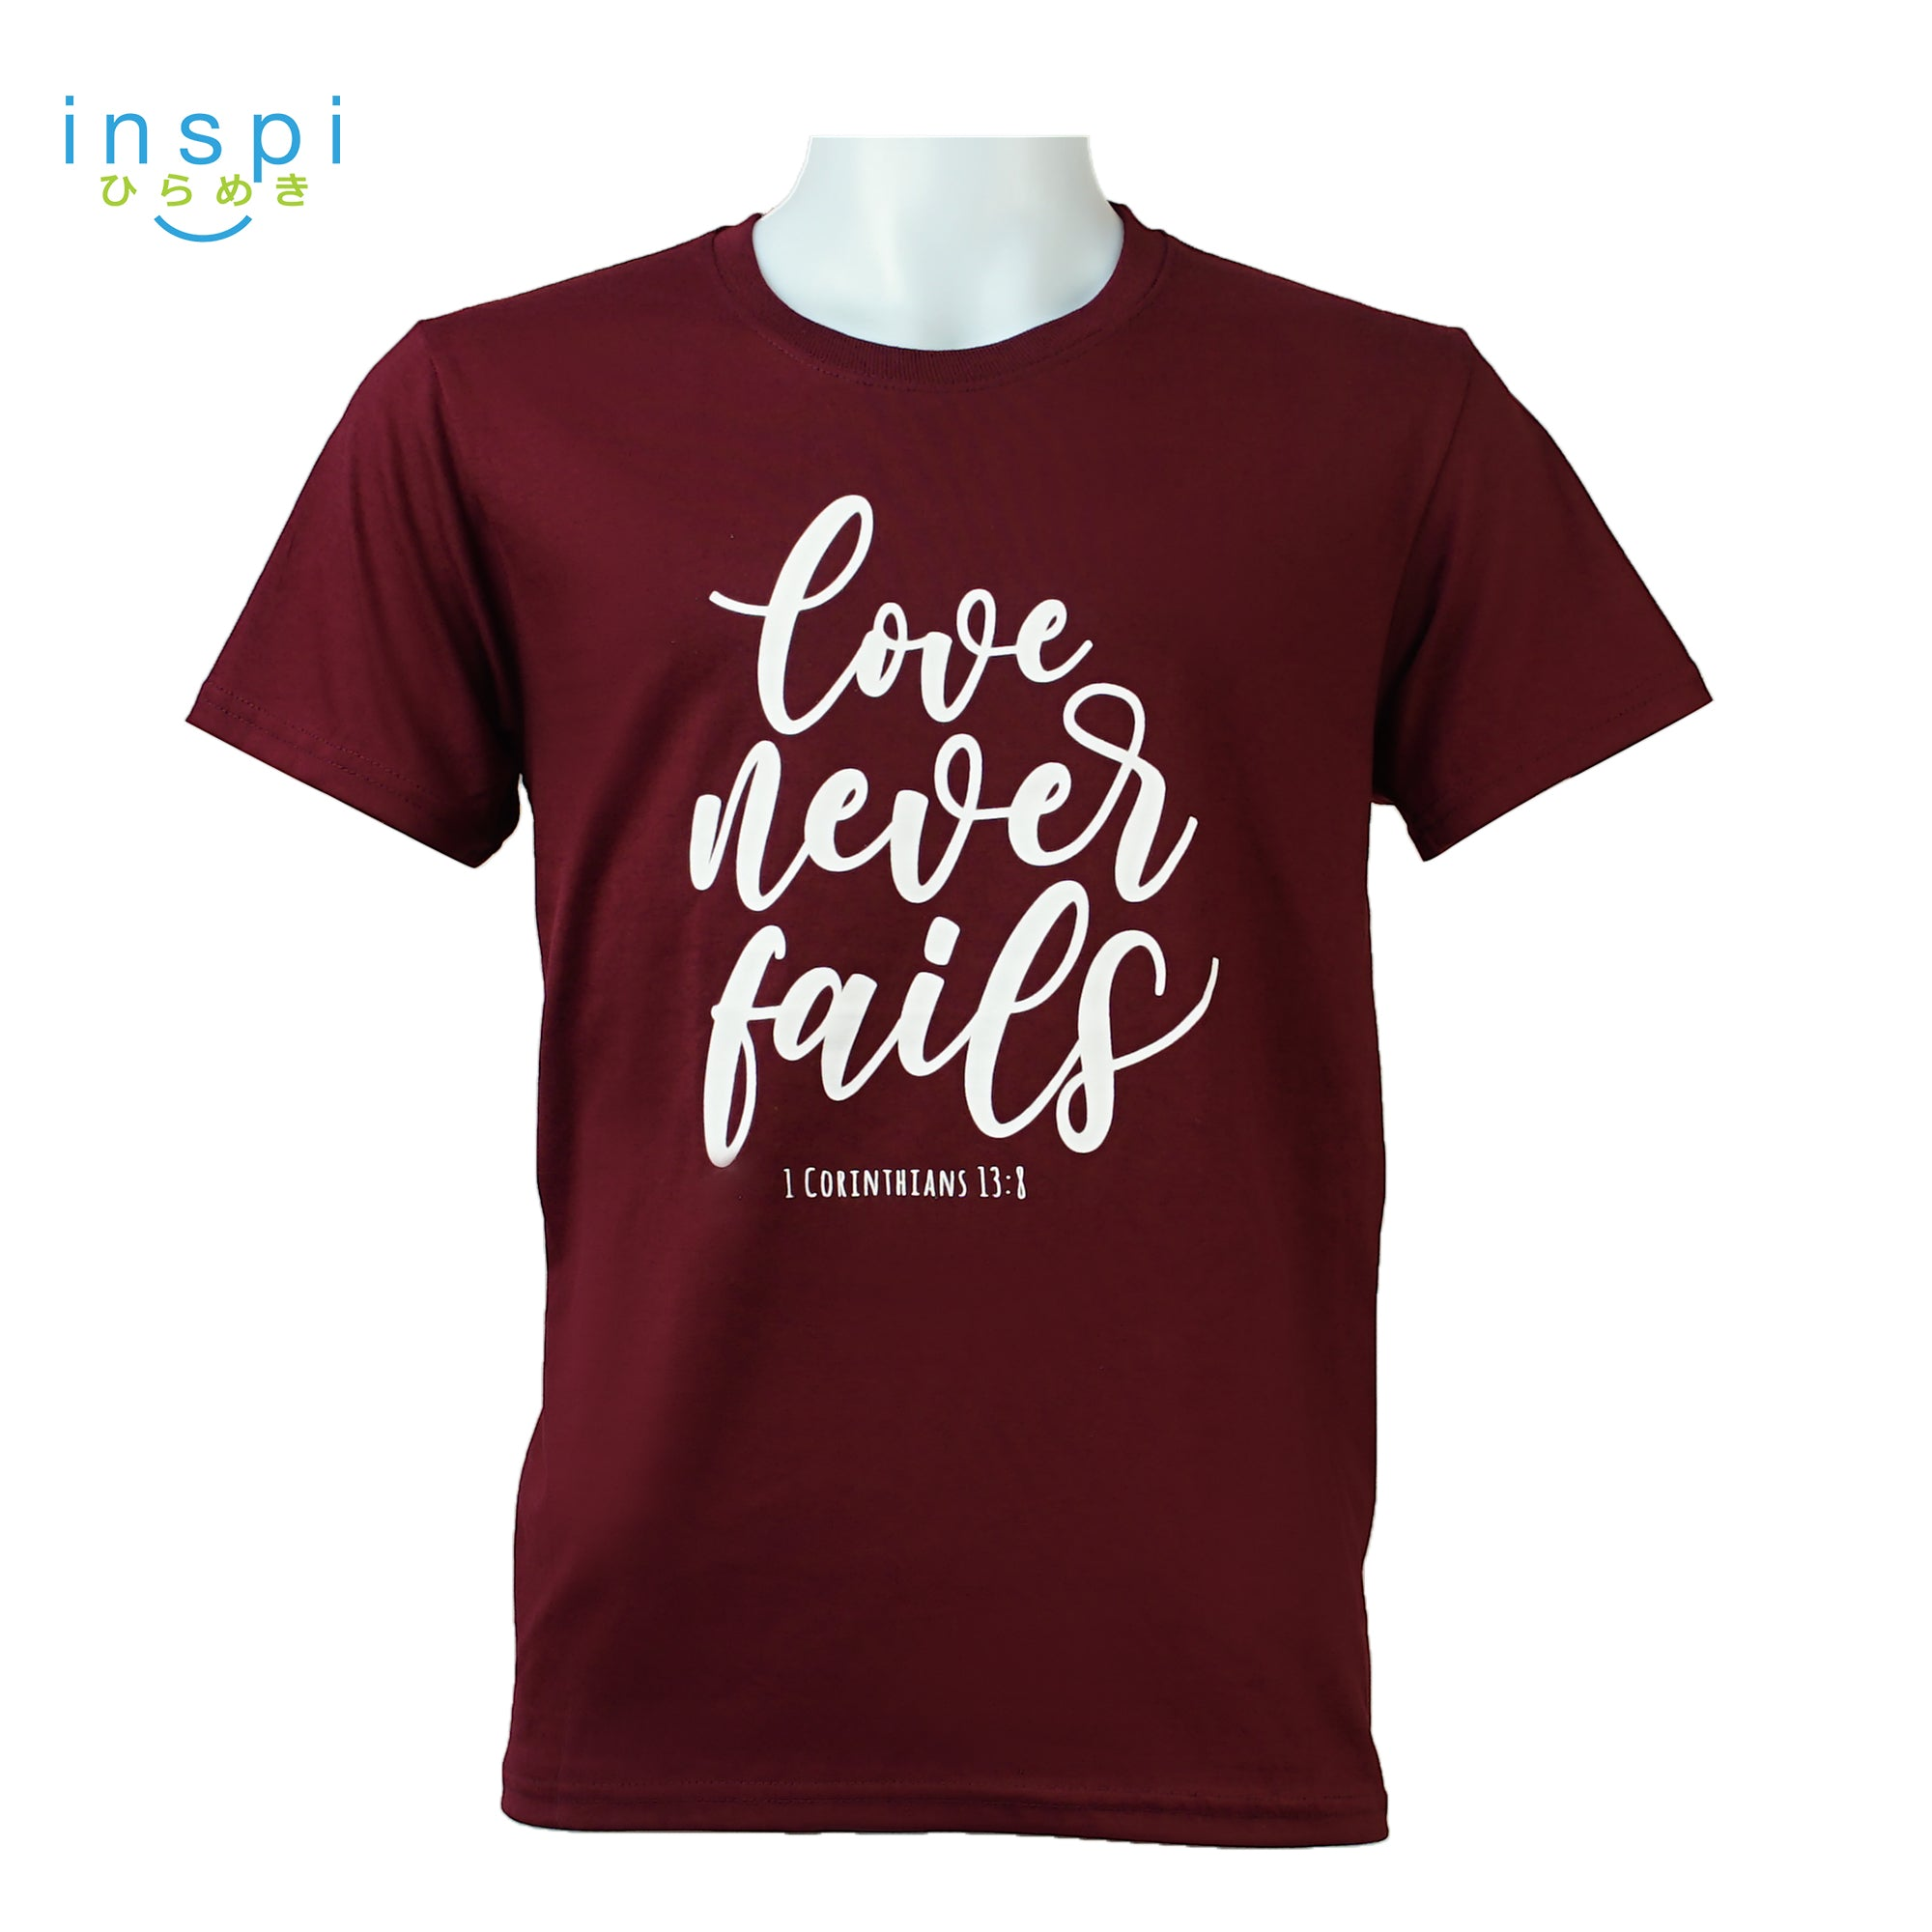 INSPI Tees Love Never Fails Graphic Tshirt in Maroon